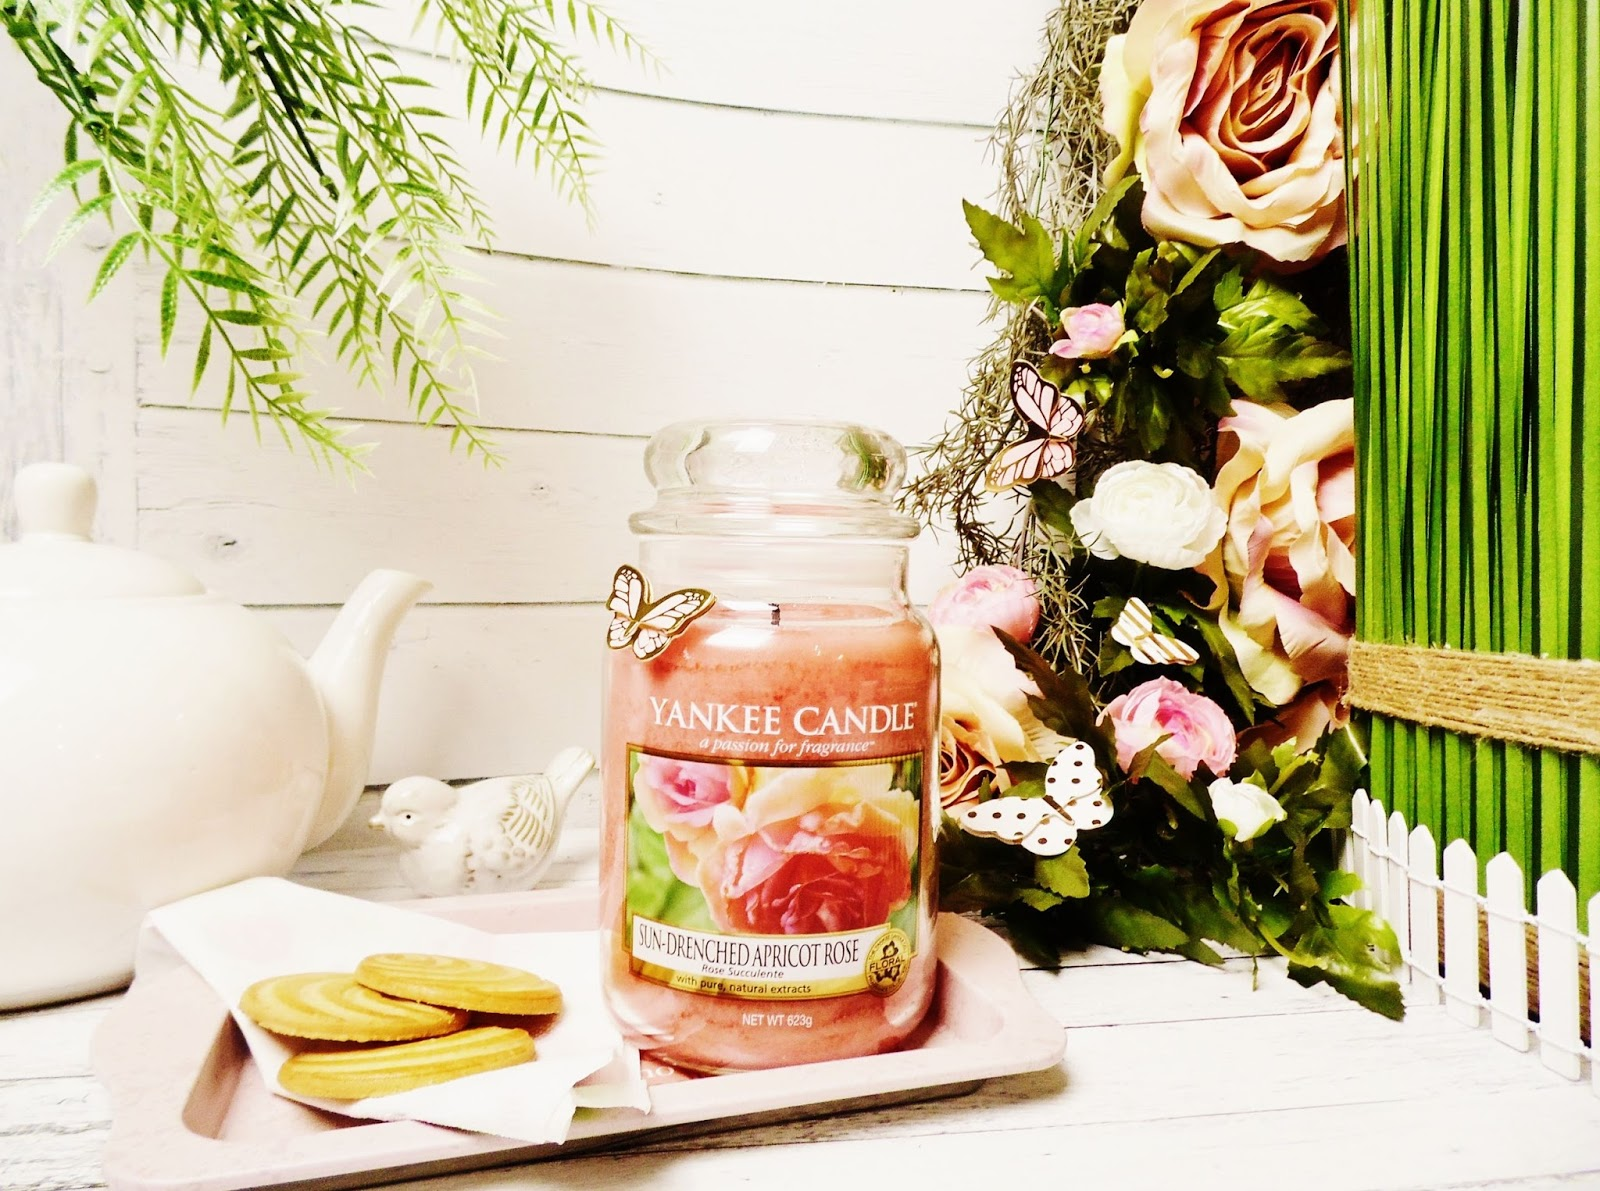 Sun Drenched Apricot Rose Yankee Candle Recenzja